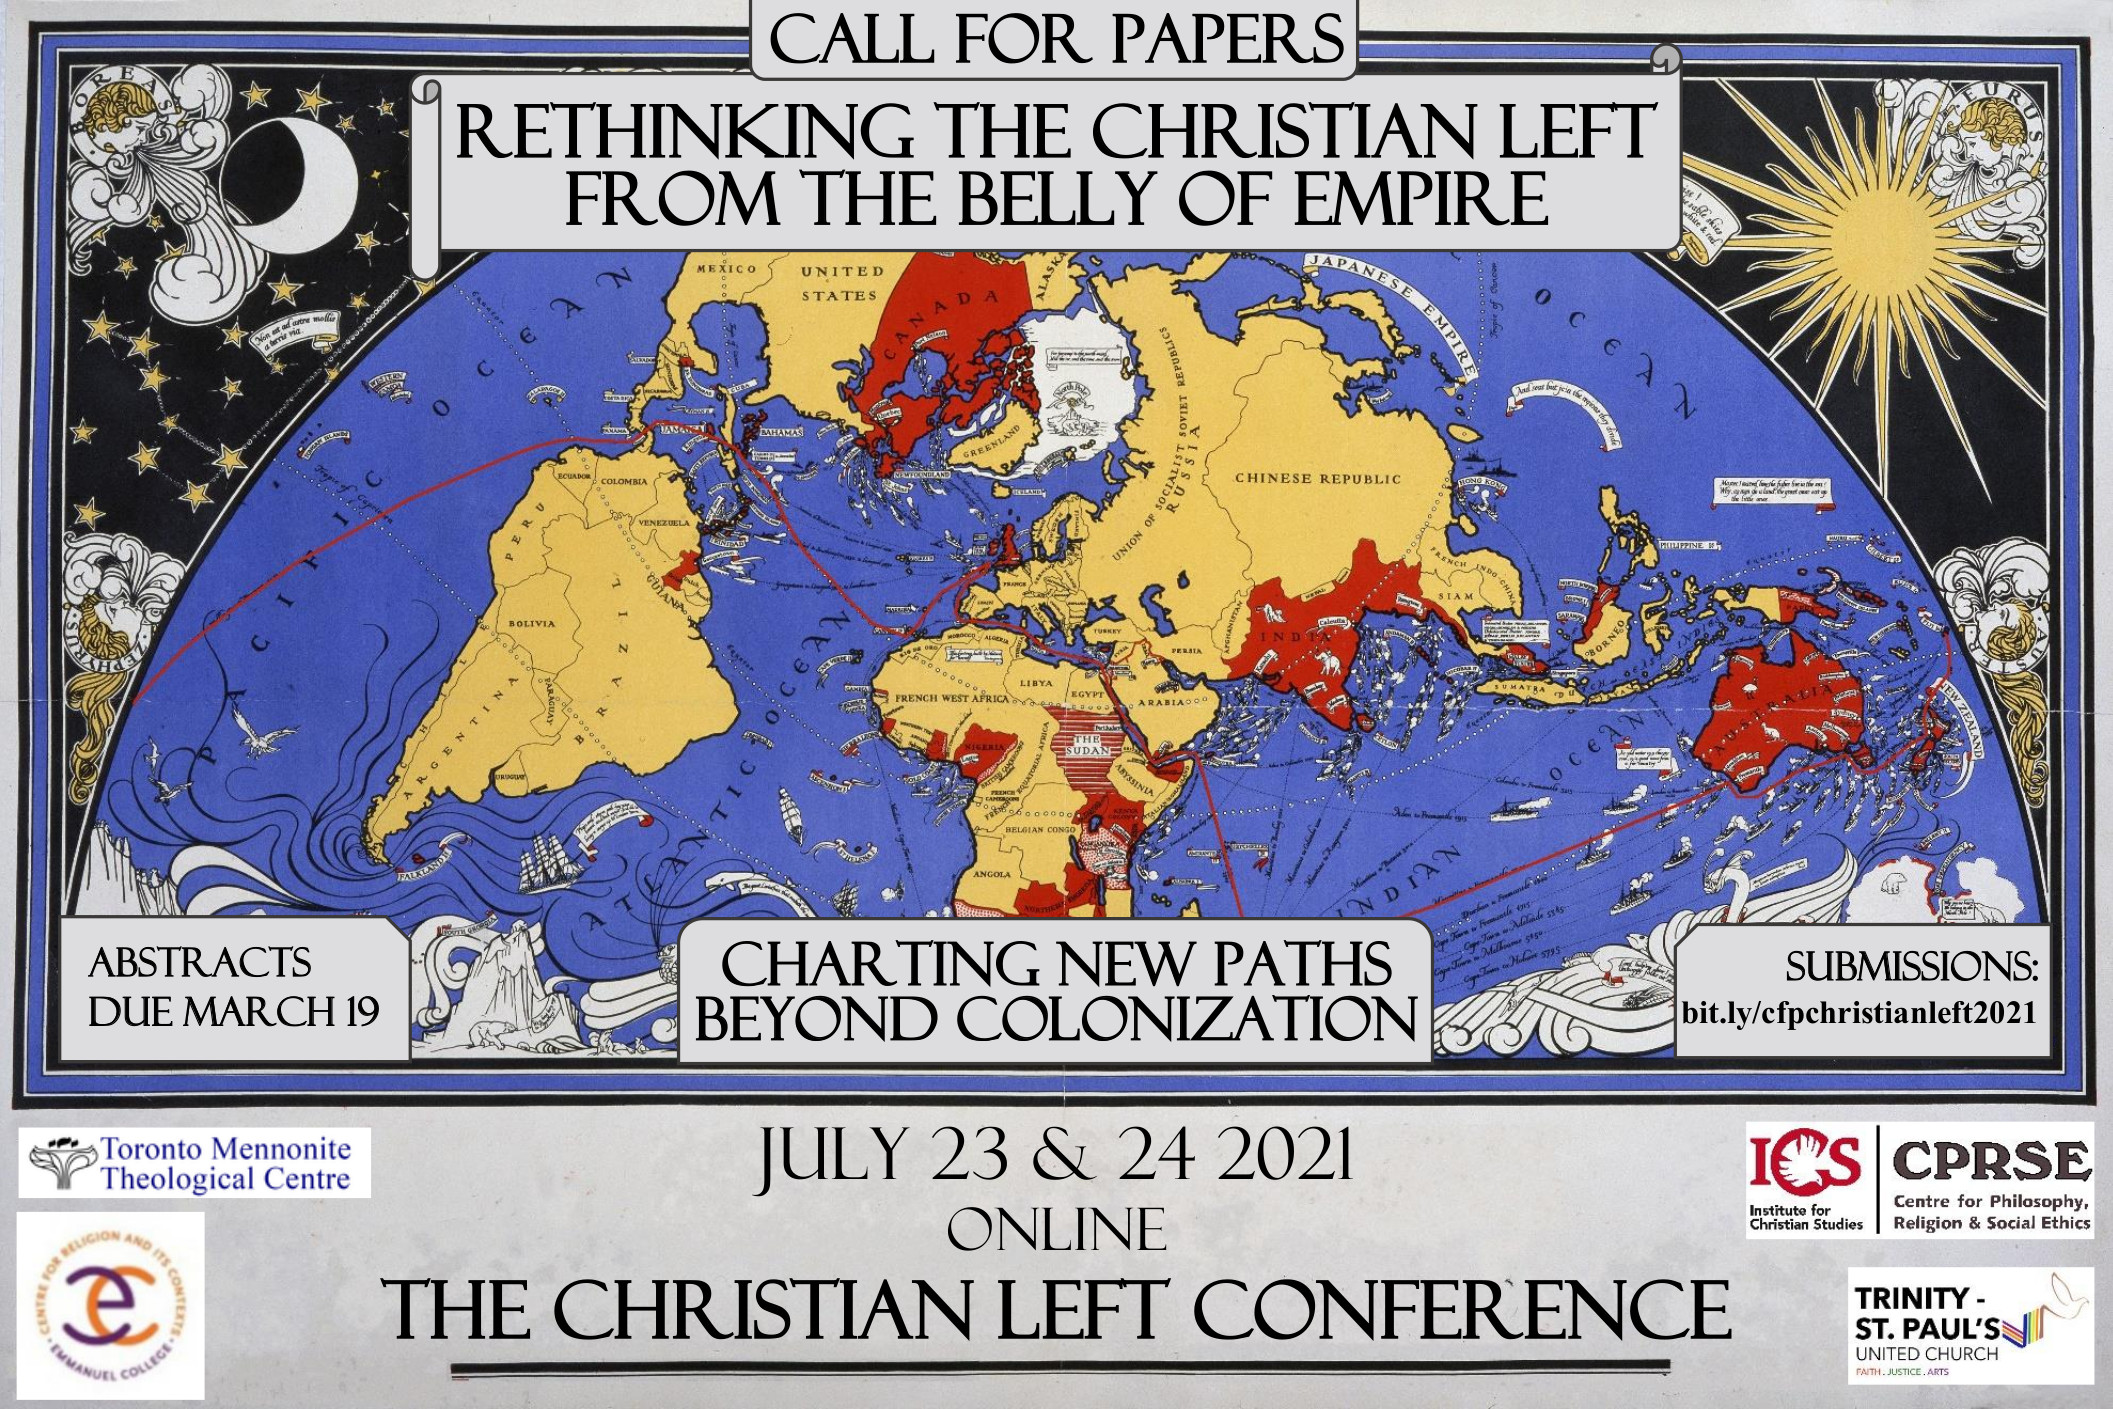 2021 Christian Left Conference